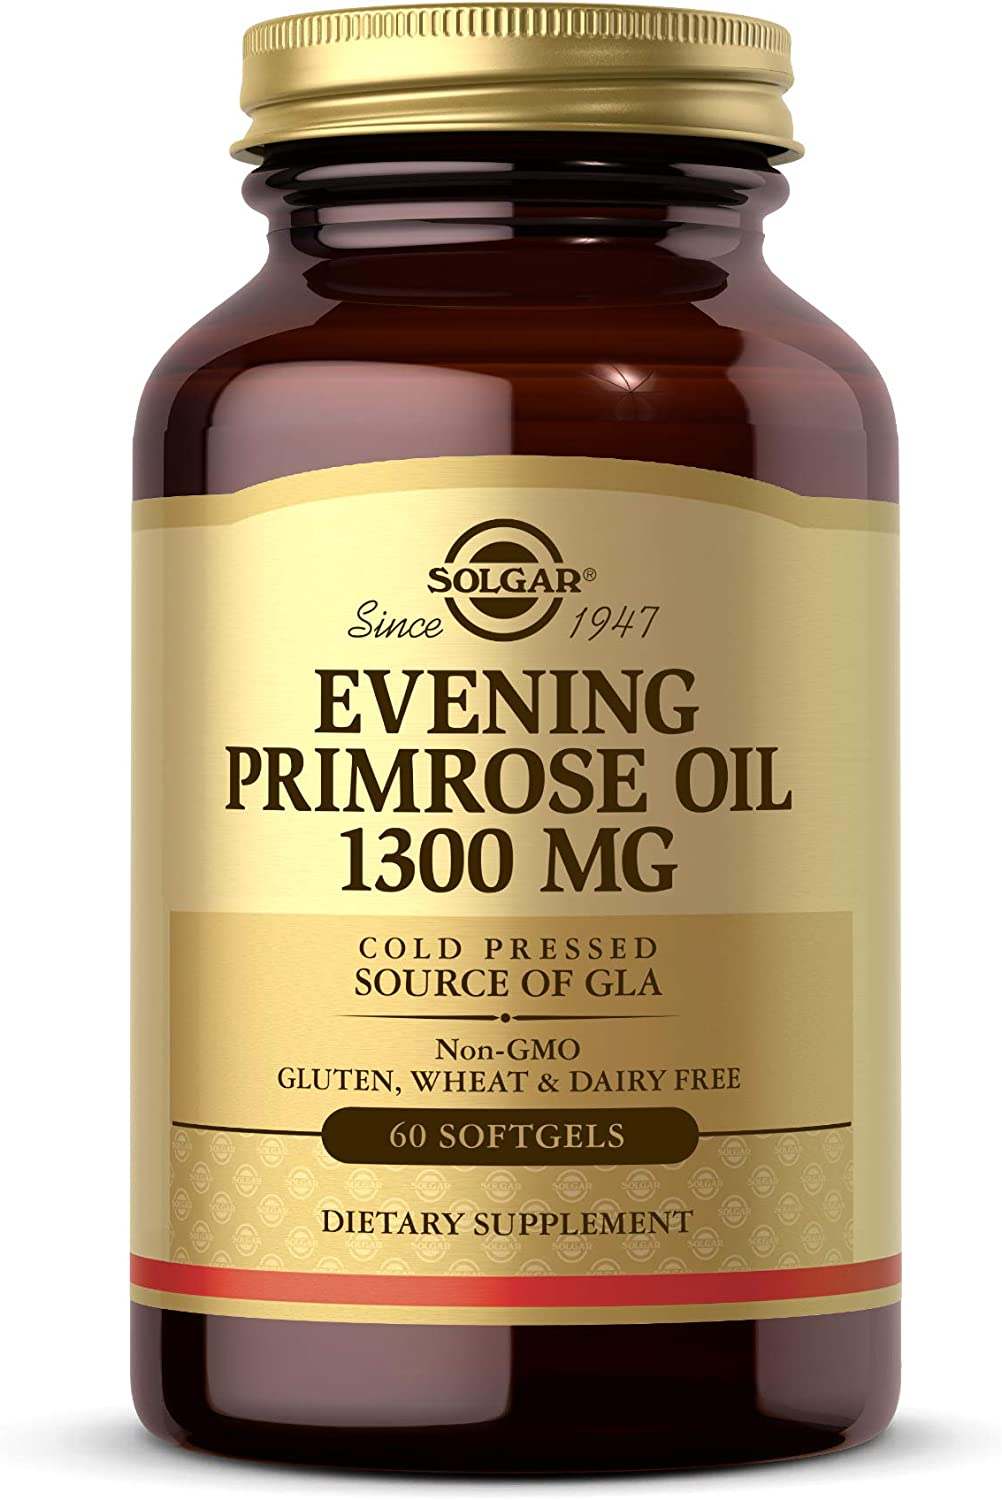 Solgar Evening Primrose Oil 1300 mg, 60 Softgels - Promotes Healthy Skin & Cardiovascular Health - Nutritional Support for Women - Non-GMO, Gluten Free, Dairy Free - 60 Servings: Health & Personal Care